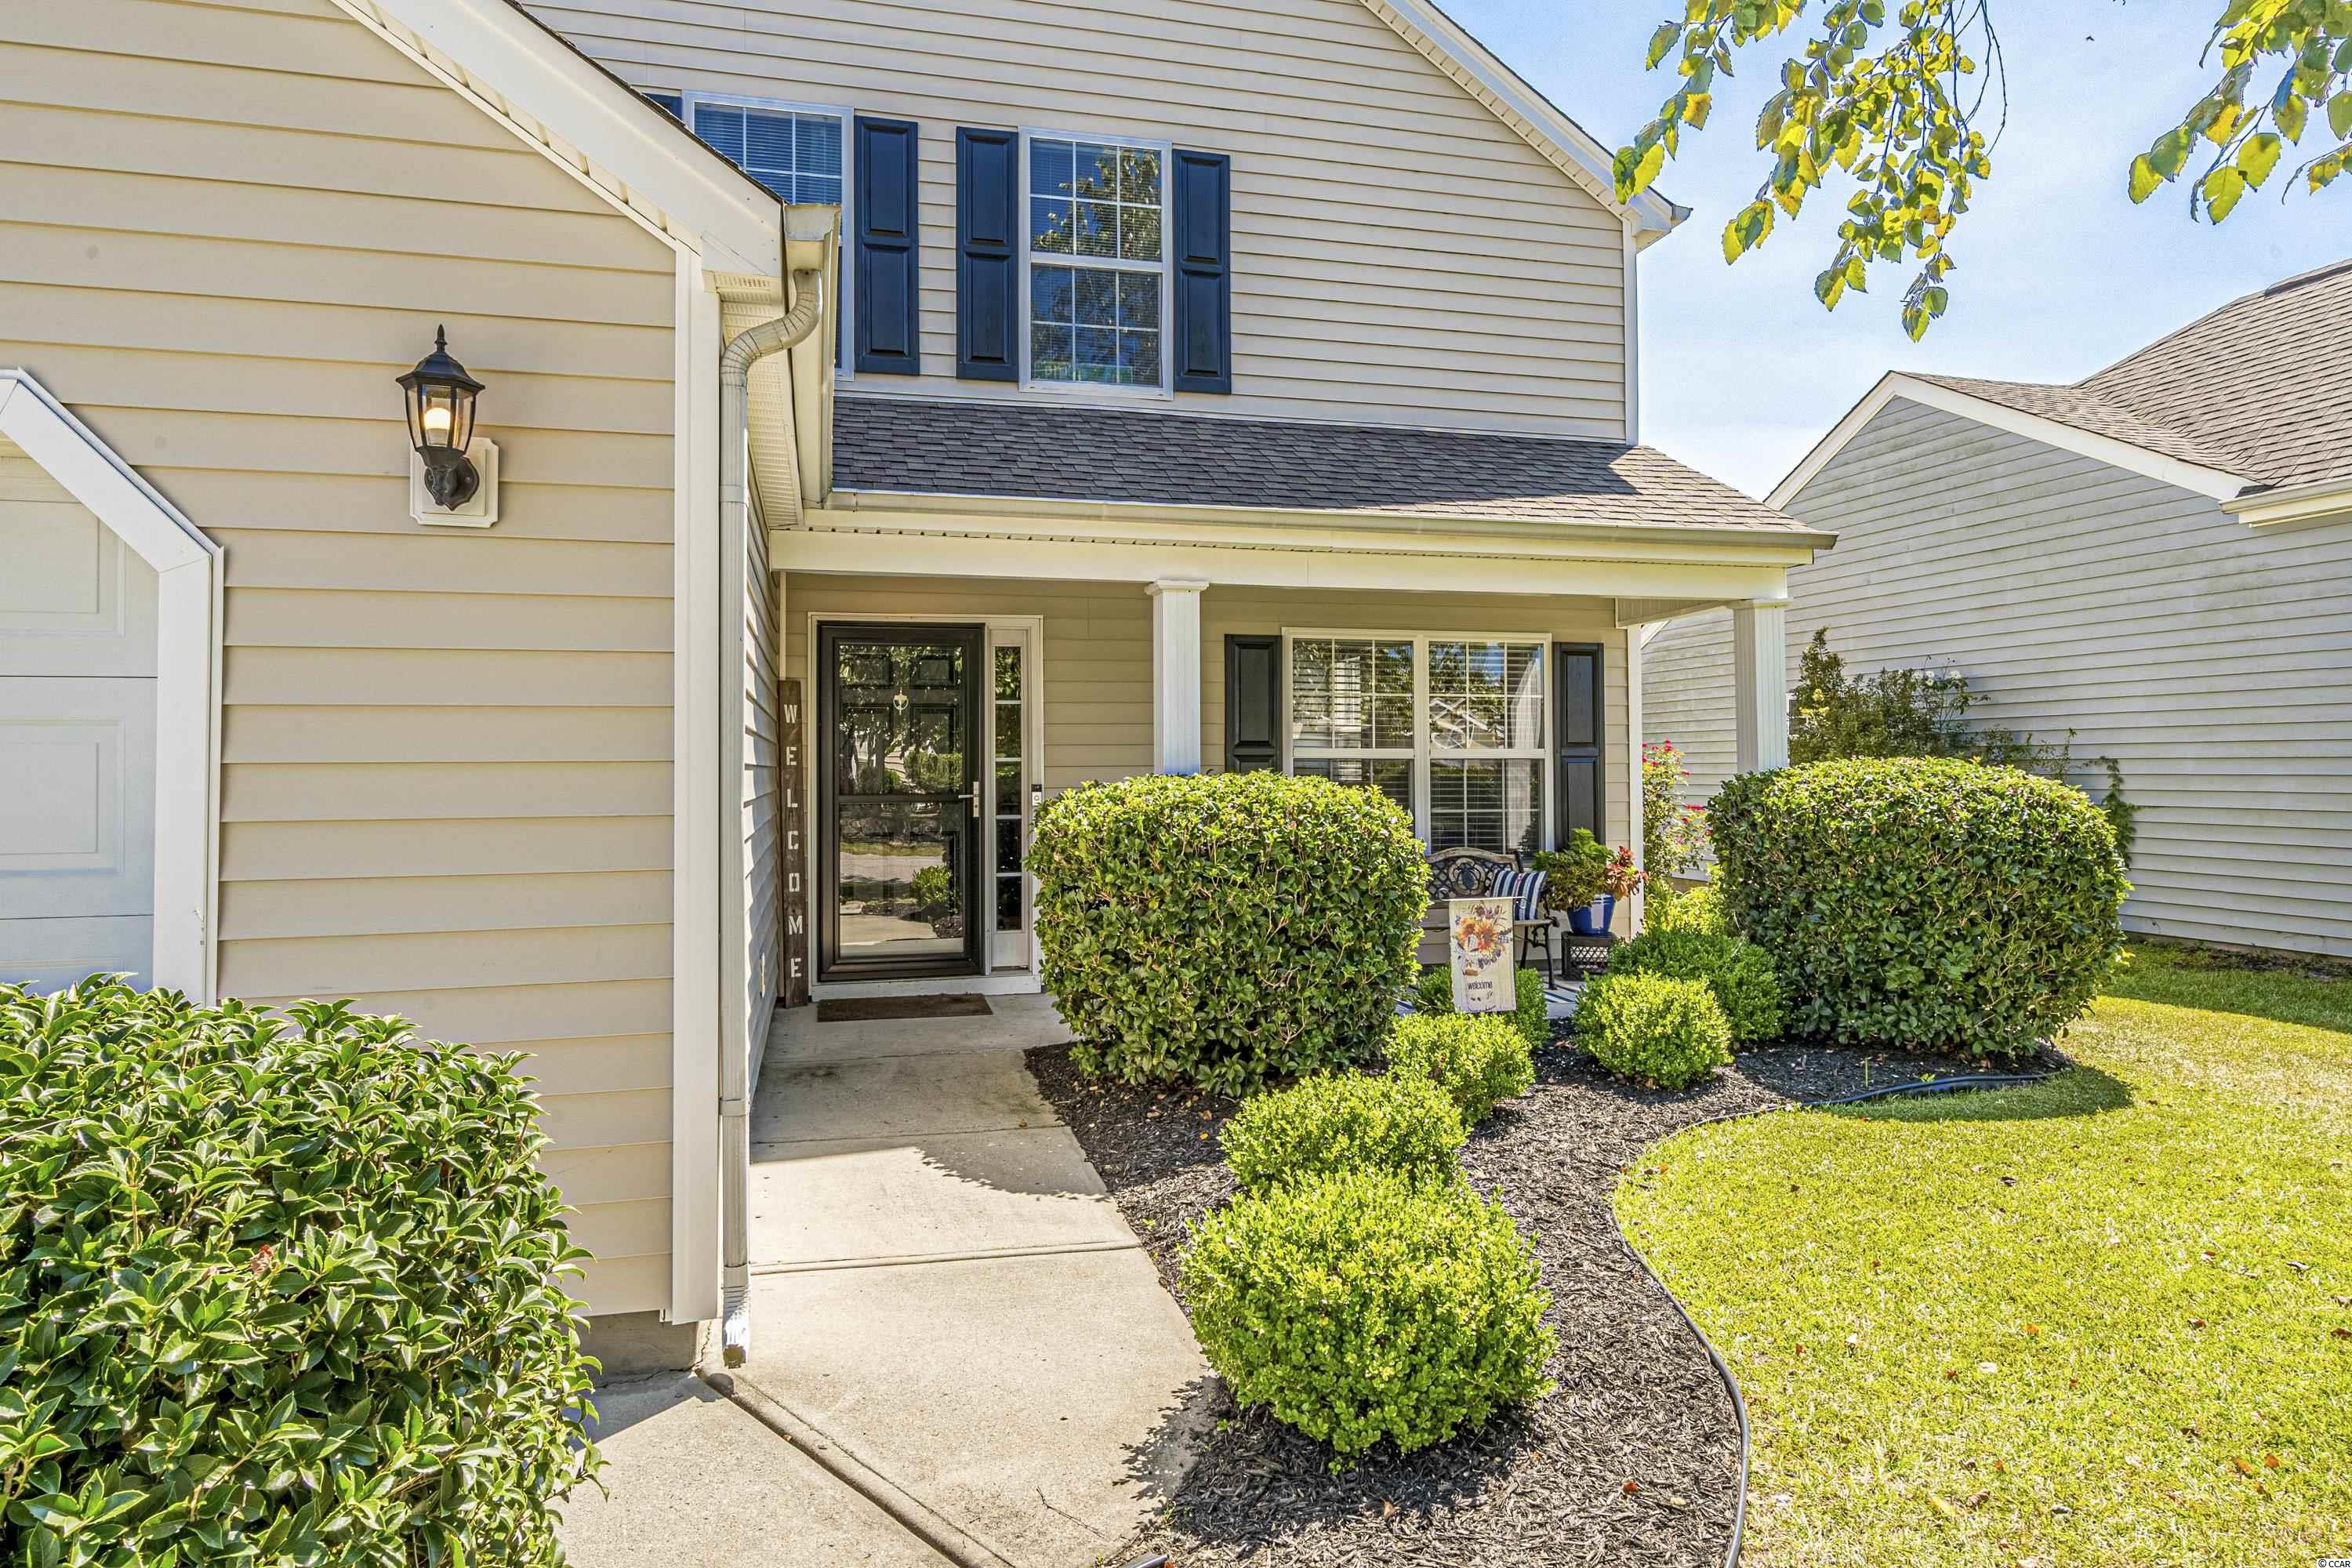 WELCOME HOME!!! THE FARM IS ONE OF THE MOST SOUGHT AFTER COMMUNITIES IN CAROLINA FOREST, AND NOW IS YOUR CHANCE TO OWN THIS BEAUTIFUL HOME!! THIS 4 BEDROOM, 2 1/2 BATH HOME IS WITH-IN WALKING DISTANCE TO AWARD WINNING SCHOOLS! THE FARM IS CONVENIENTLY LOCATED NEAR MAJOR MEDICAL FACILITIES, SHOPPING, RESTAURANTS, MAJOR ROADS, AND A SHORT DRIVE TO THE BEACH!! THIS HOME FEATURES A FENCED-IN BACK YARD WITH A CUSTOM PERGULA FOR ENTERTAINING OR RELAXING ON A BEAUTIFUL FALL EVENING. YOU WILL LOVE THE CUSTOM CREATIONS THROUGHOUT THE HOME TO GIVE IT THAT MODERN FARMHOUSE FEEL, WITH SHIPLAP AND LAMINATE WOOD FLOORS. THE INTERIOR COLOR IS NEUTRAL FOR FOR THAT RELAXING VIBE! THIS COZY HOME WILL NOT LAST LONG, SO SCHEDULE YOUR SHOWING TODAY!